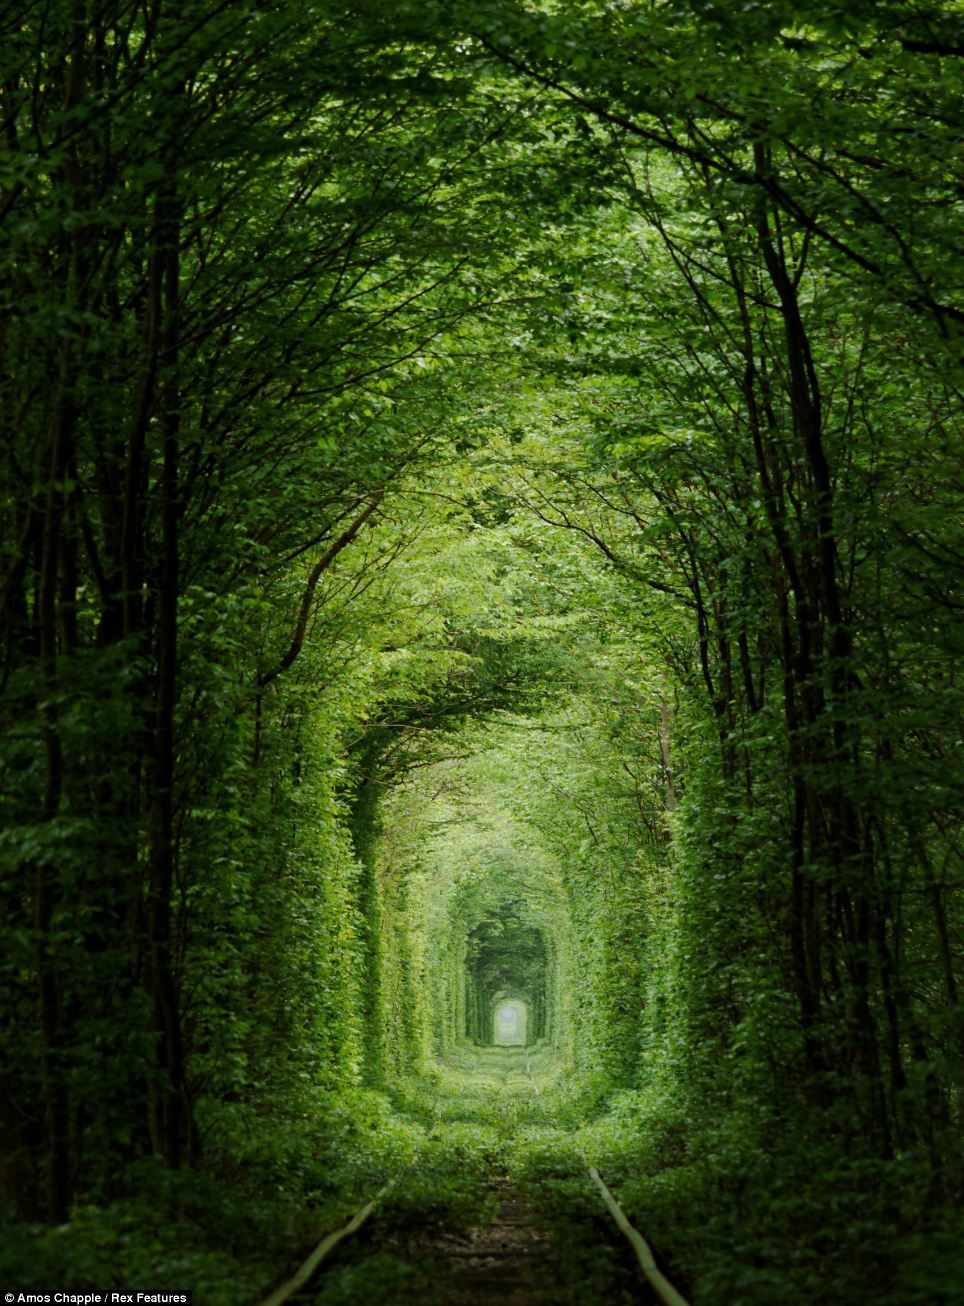 Just the ticket for popping the question The treelined romantic 'tunnel of love' railway line that's so beautiful it's beyond beleaf (just watch out for the train) is part of Tunnel of love ukraine - India may have the Taj Mahal, and Paris is the city of love, but the Ukraine has this incredible, ethereal Tunnel of Love